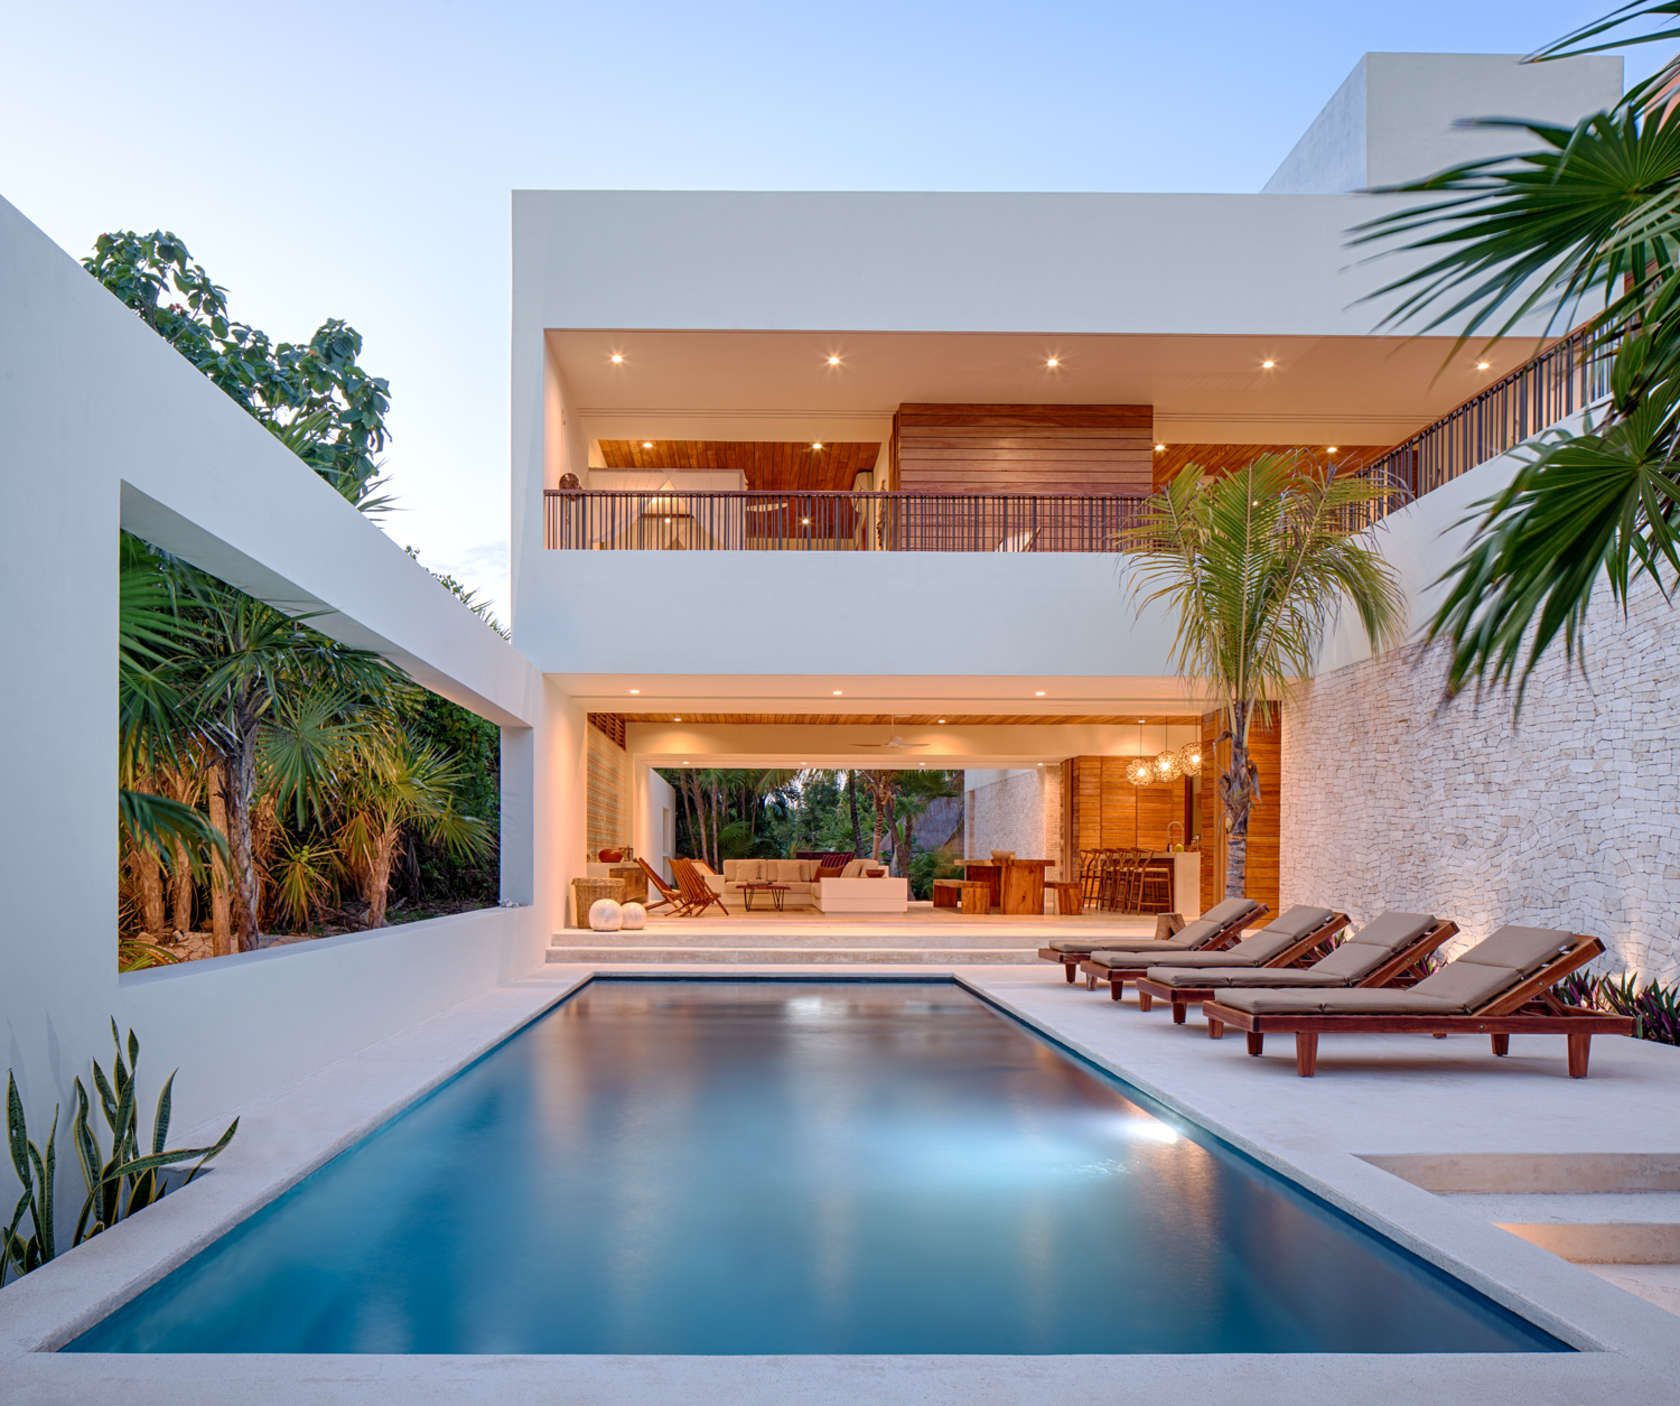 Pool Deck - Eco friendly house in mexico does not sacrifice style